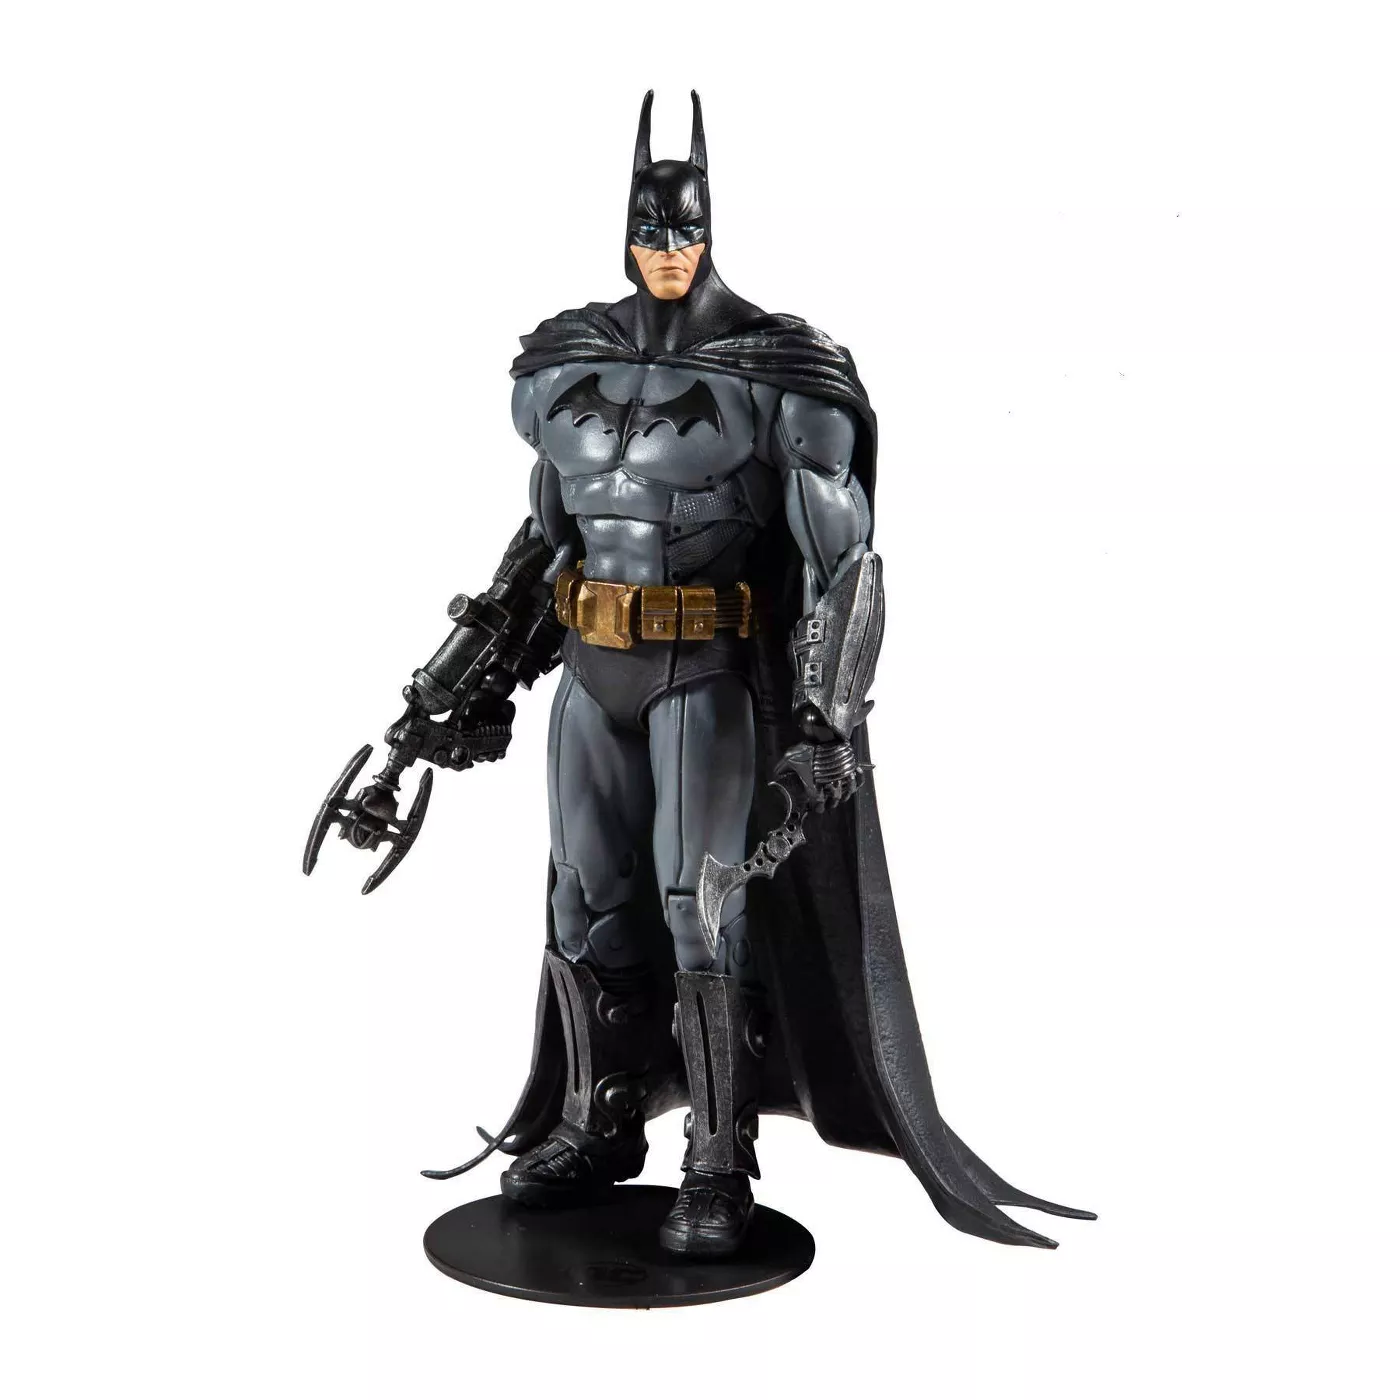 Primary image for DC Multiverse Batman: Arkham Asylum Batman Action Figure